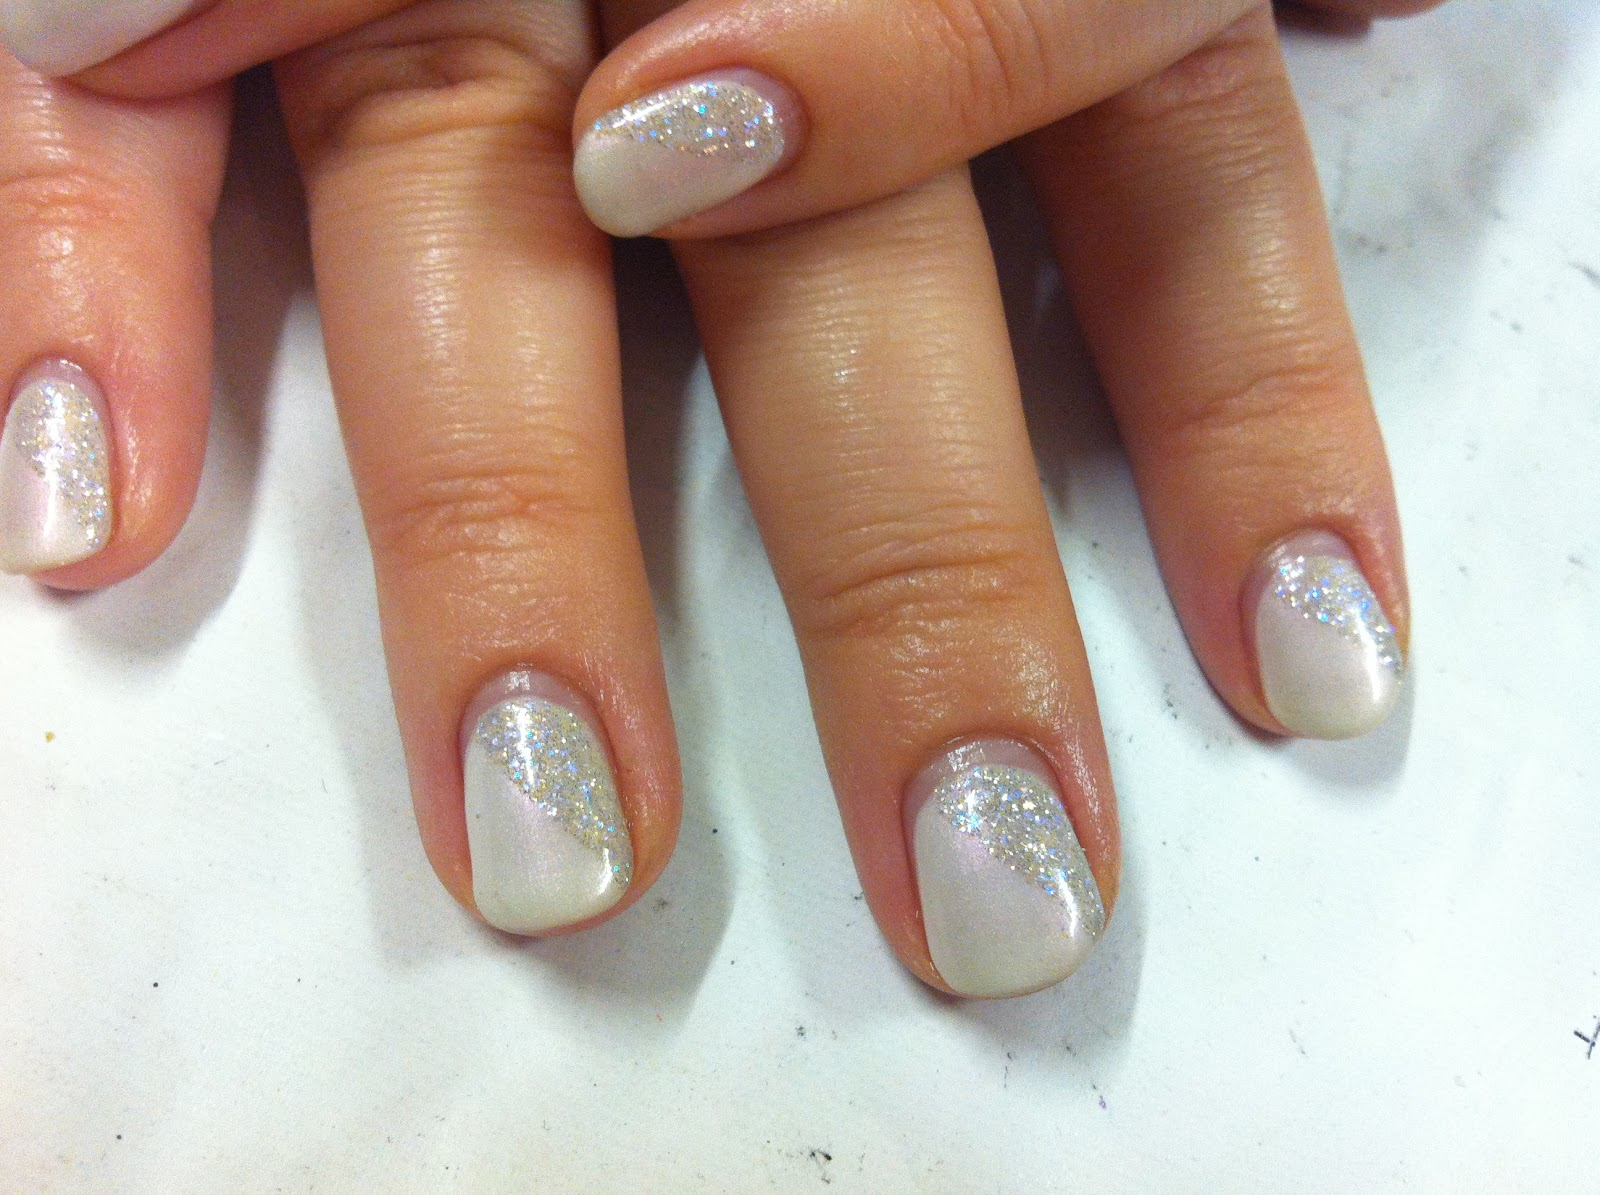 Cnd shellac christmas nail art 4 iridescent ice queen